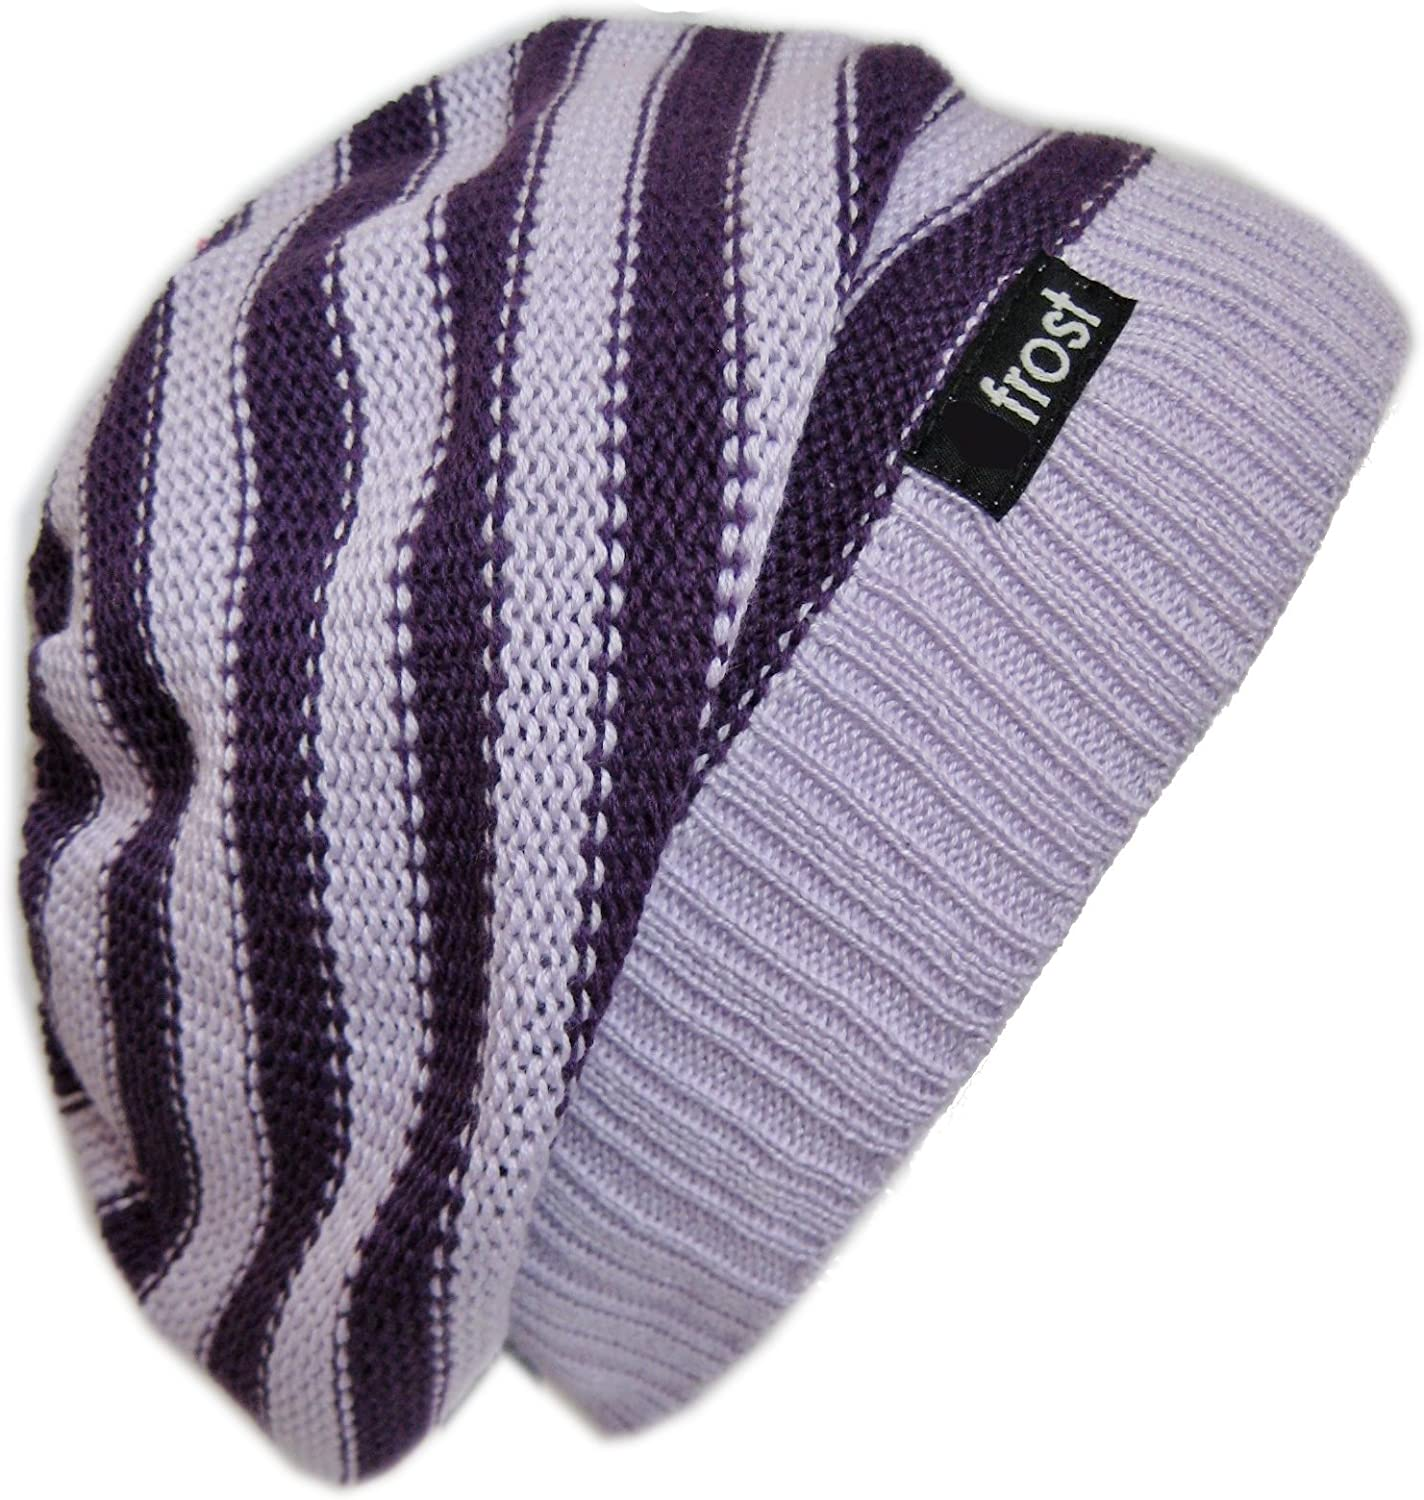 Frost Hats M-147W Slouchy Spring Beanie Striped Oversized Beret